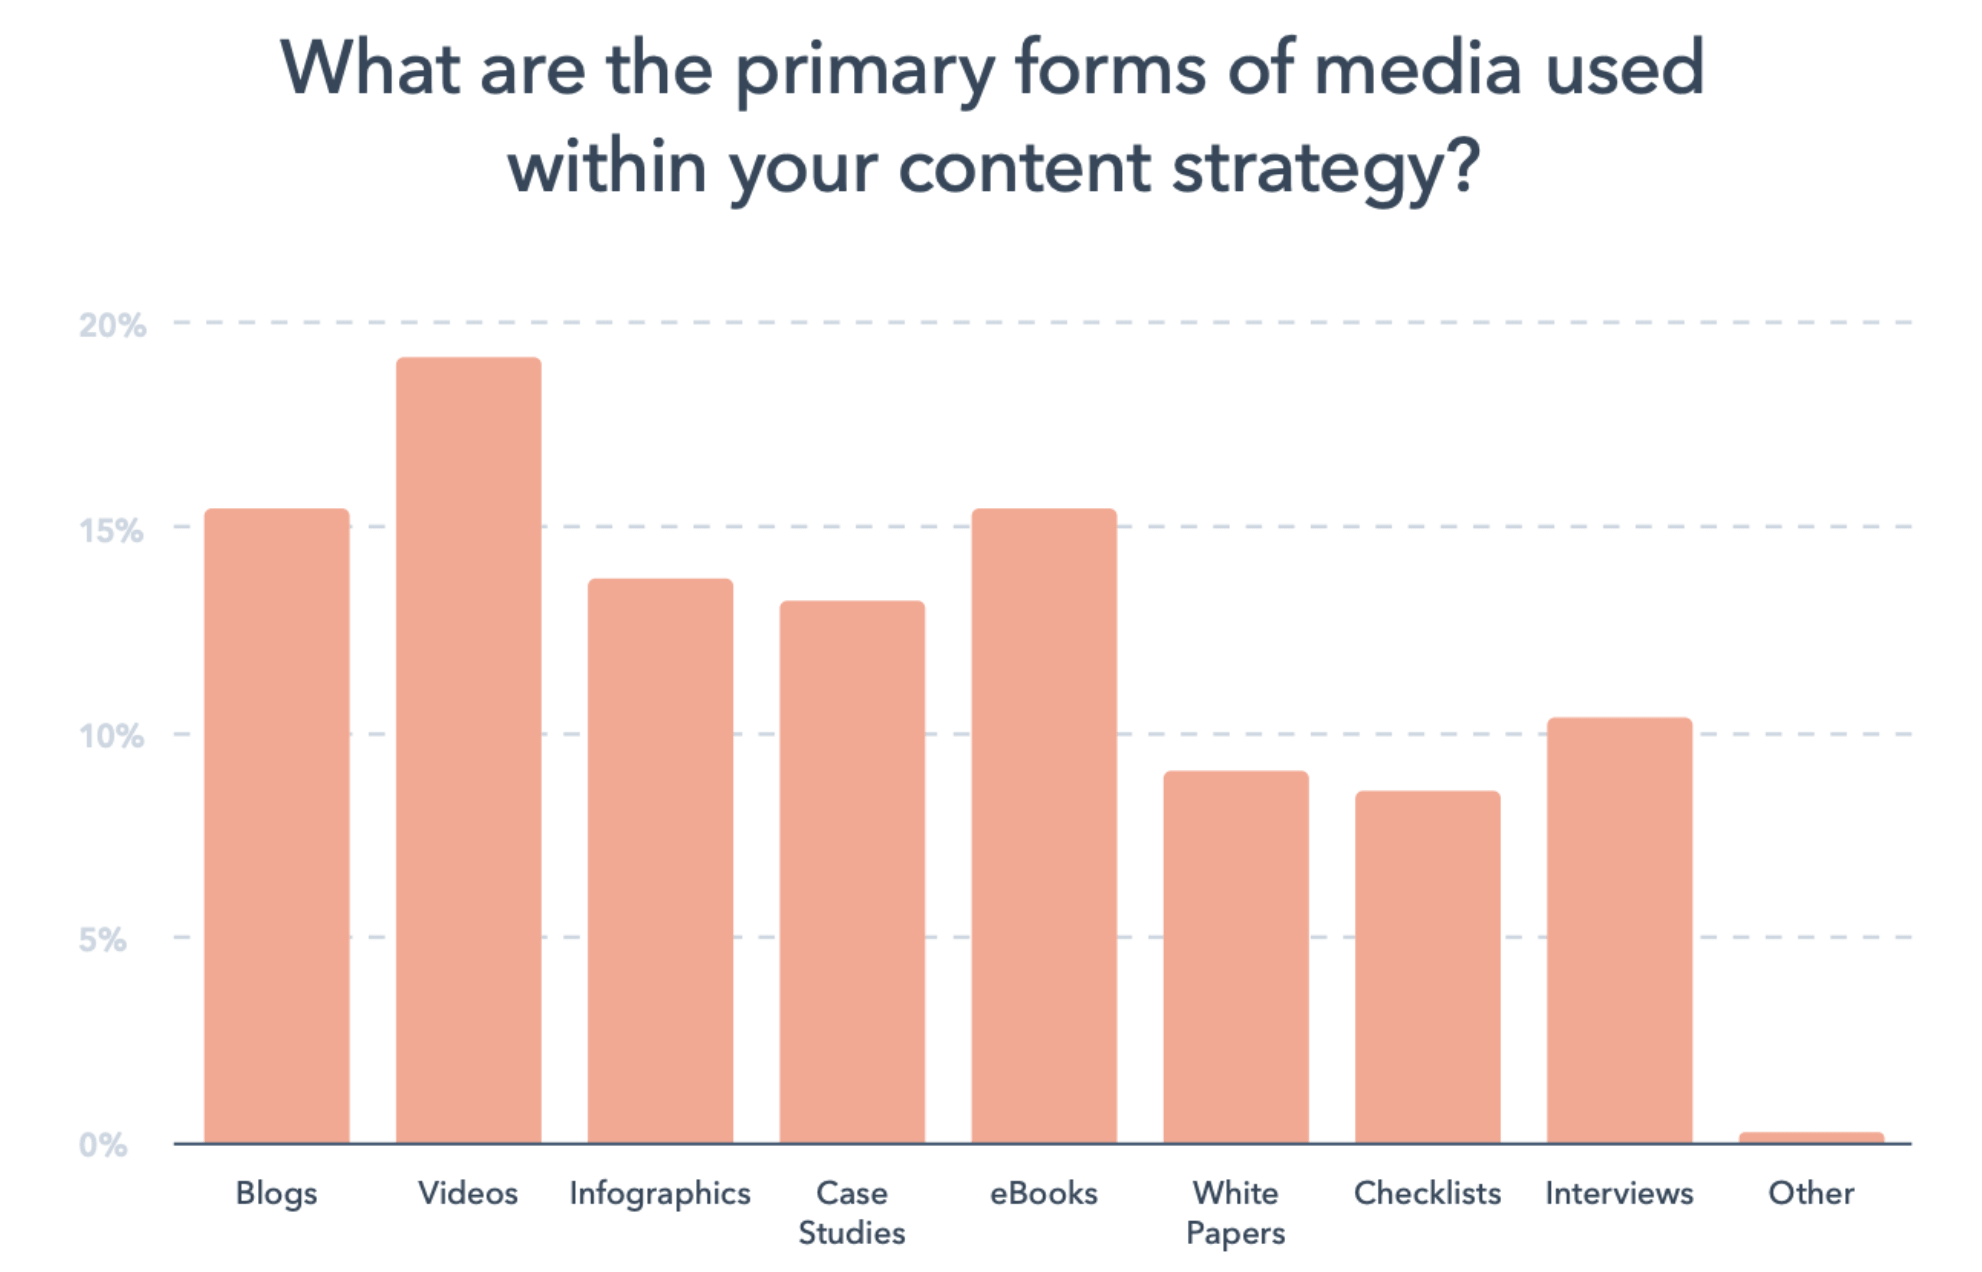 Primary forms of media used in content strategy